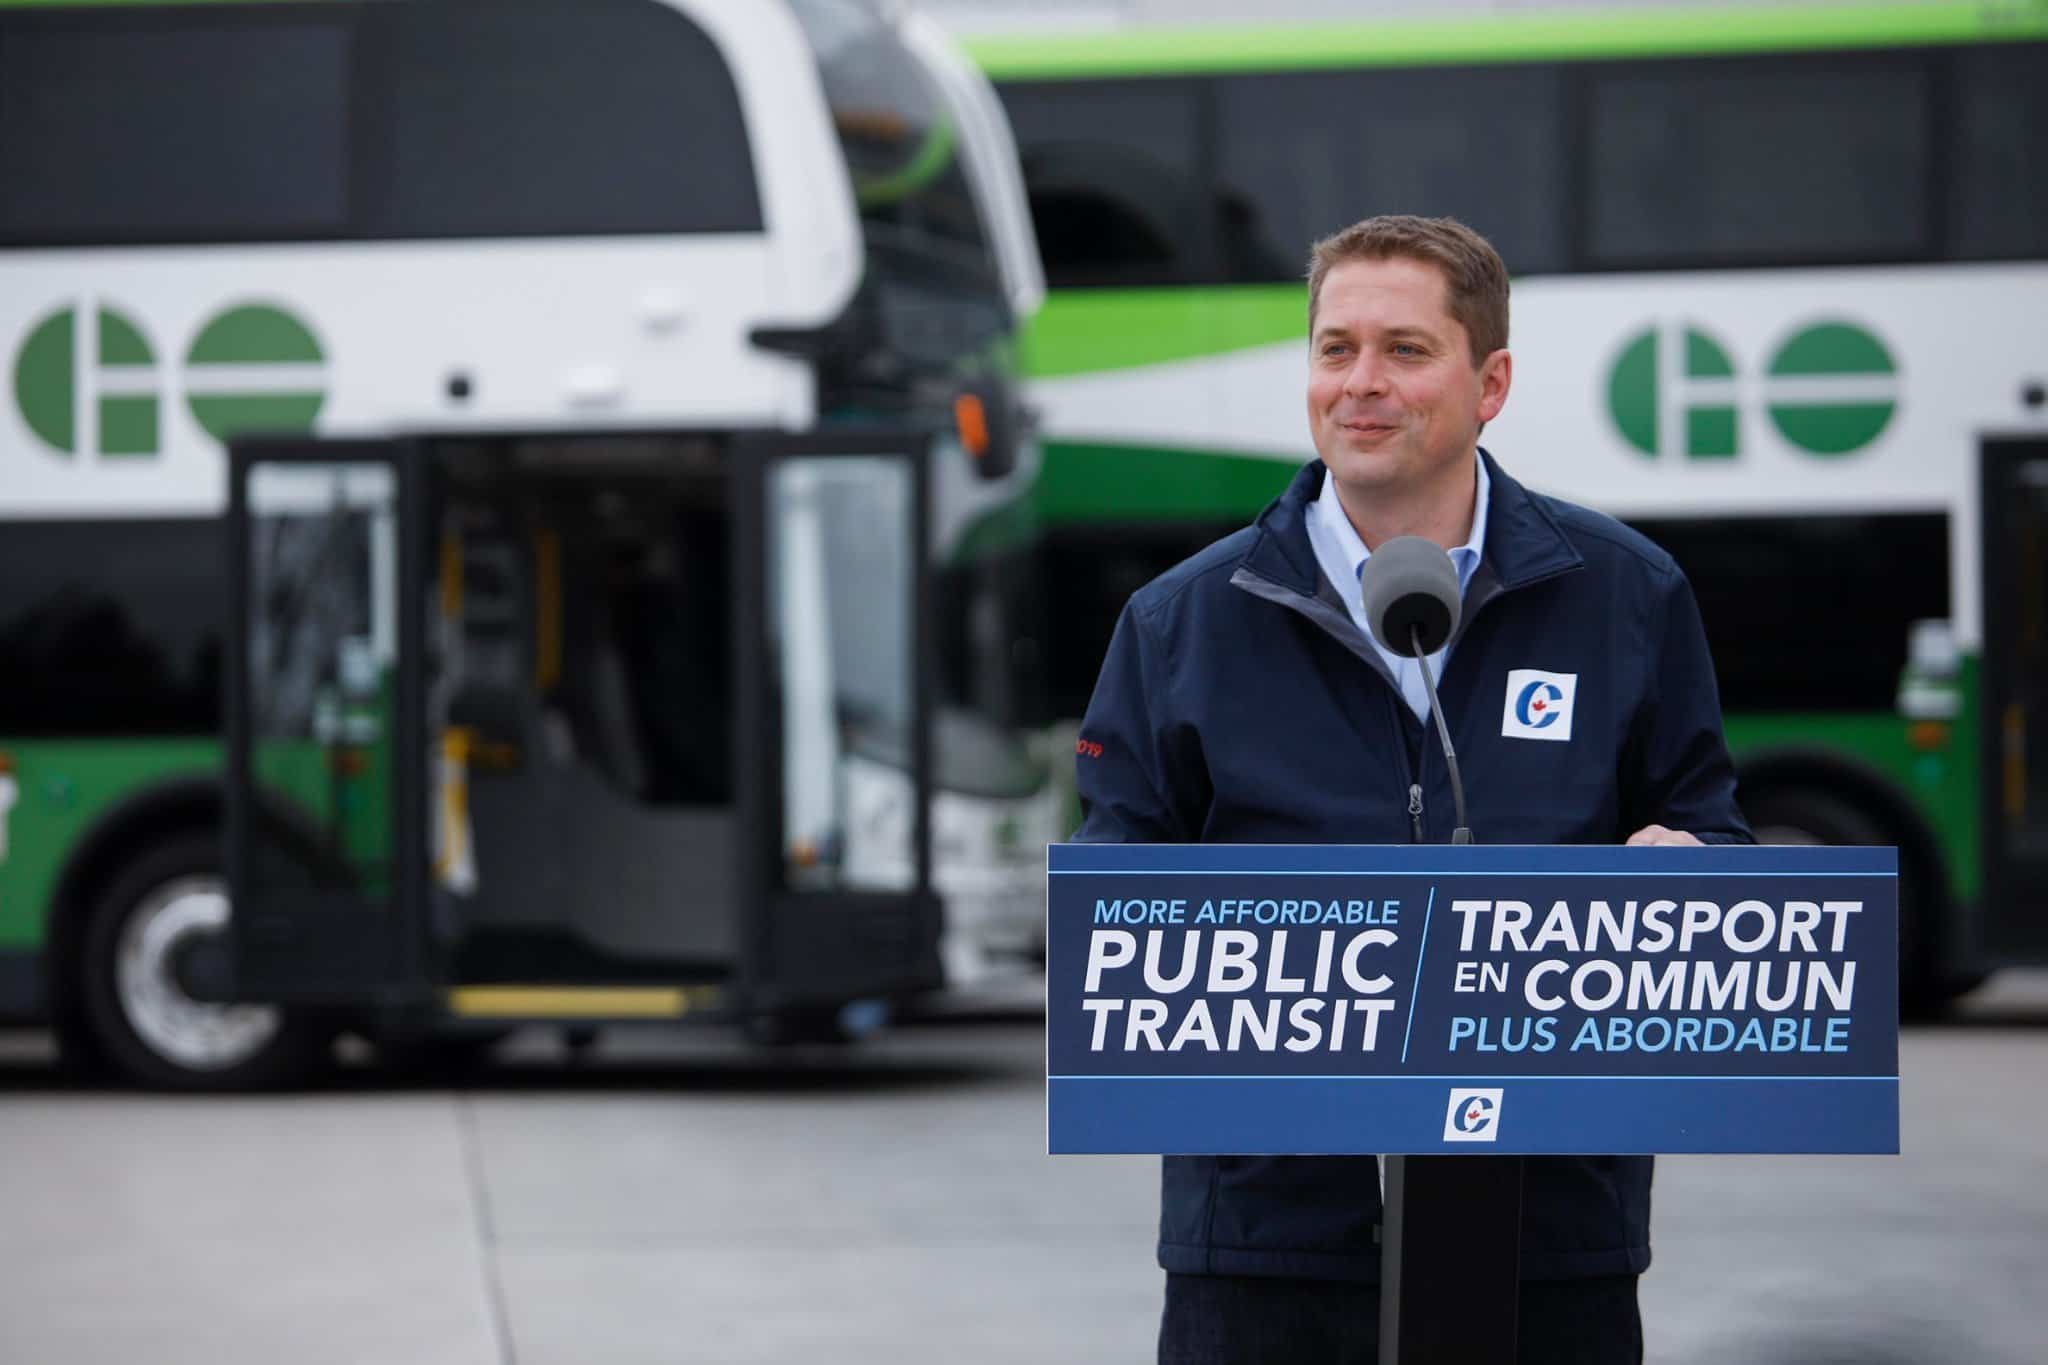 Andrew Scheer will reduce cost of public transit